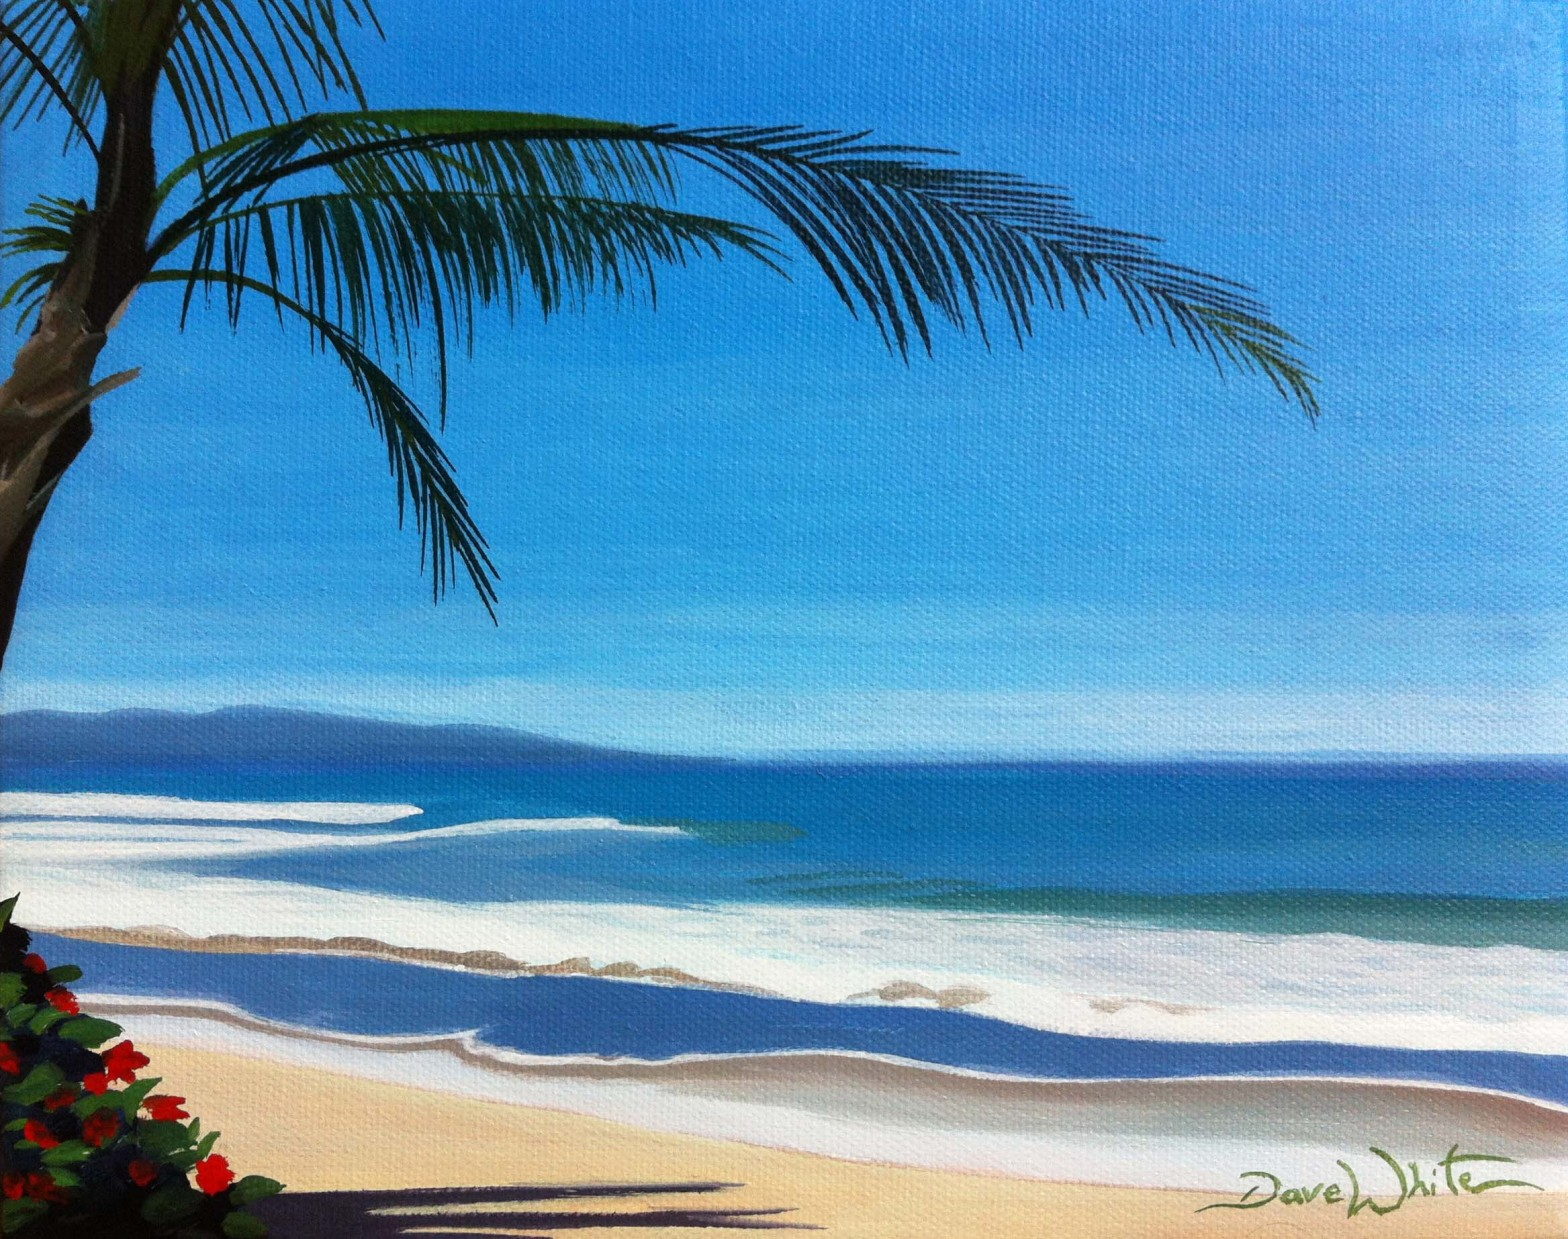 manzanillo costa rica painting, manzanillo costa rica art